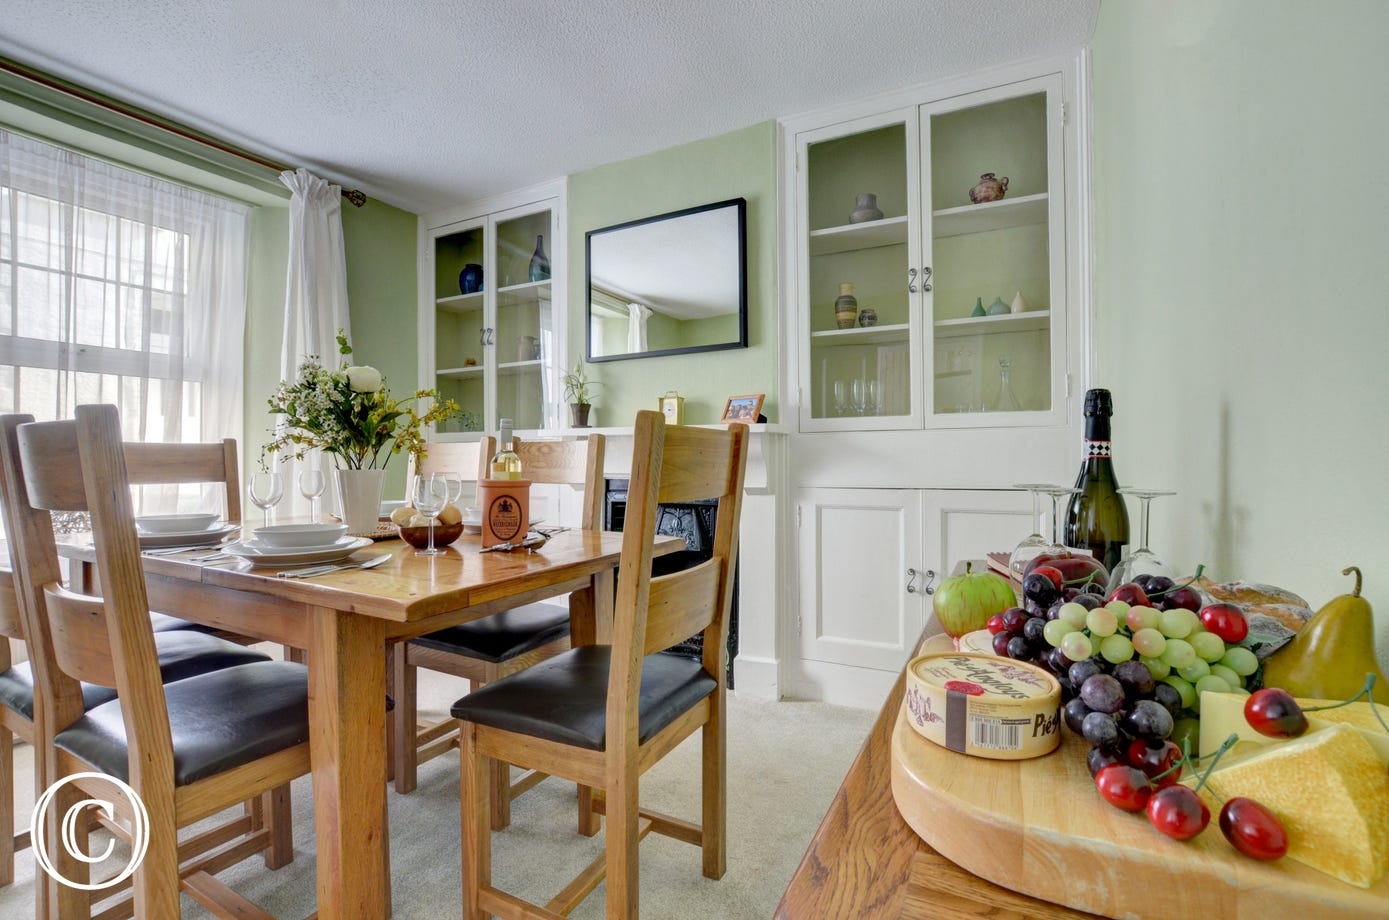 The property benefits from a separate dining room